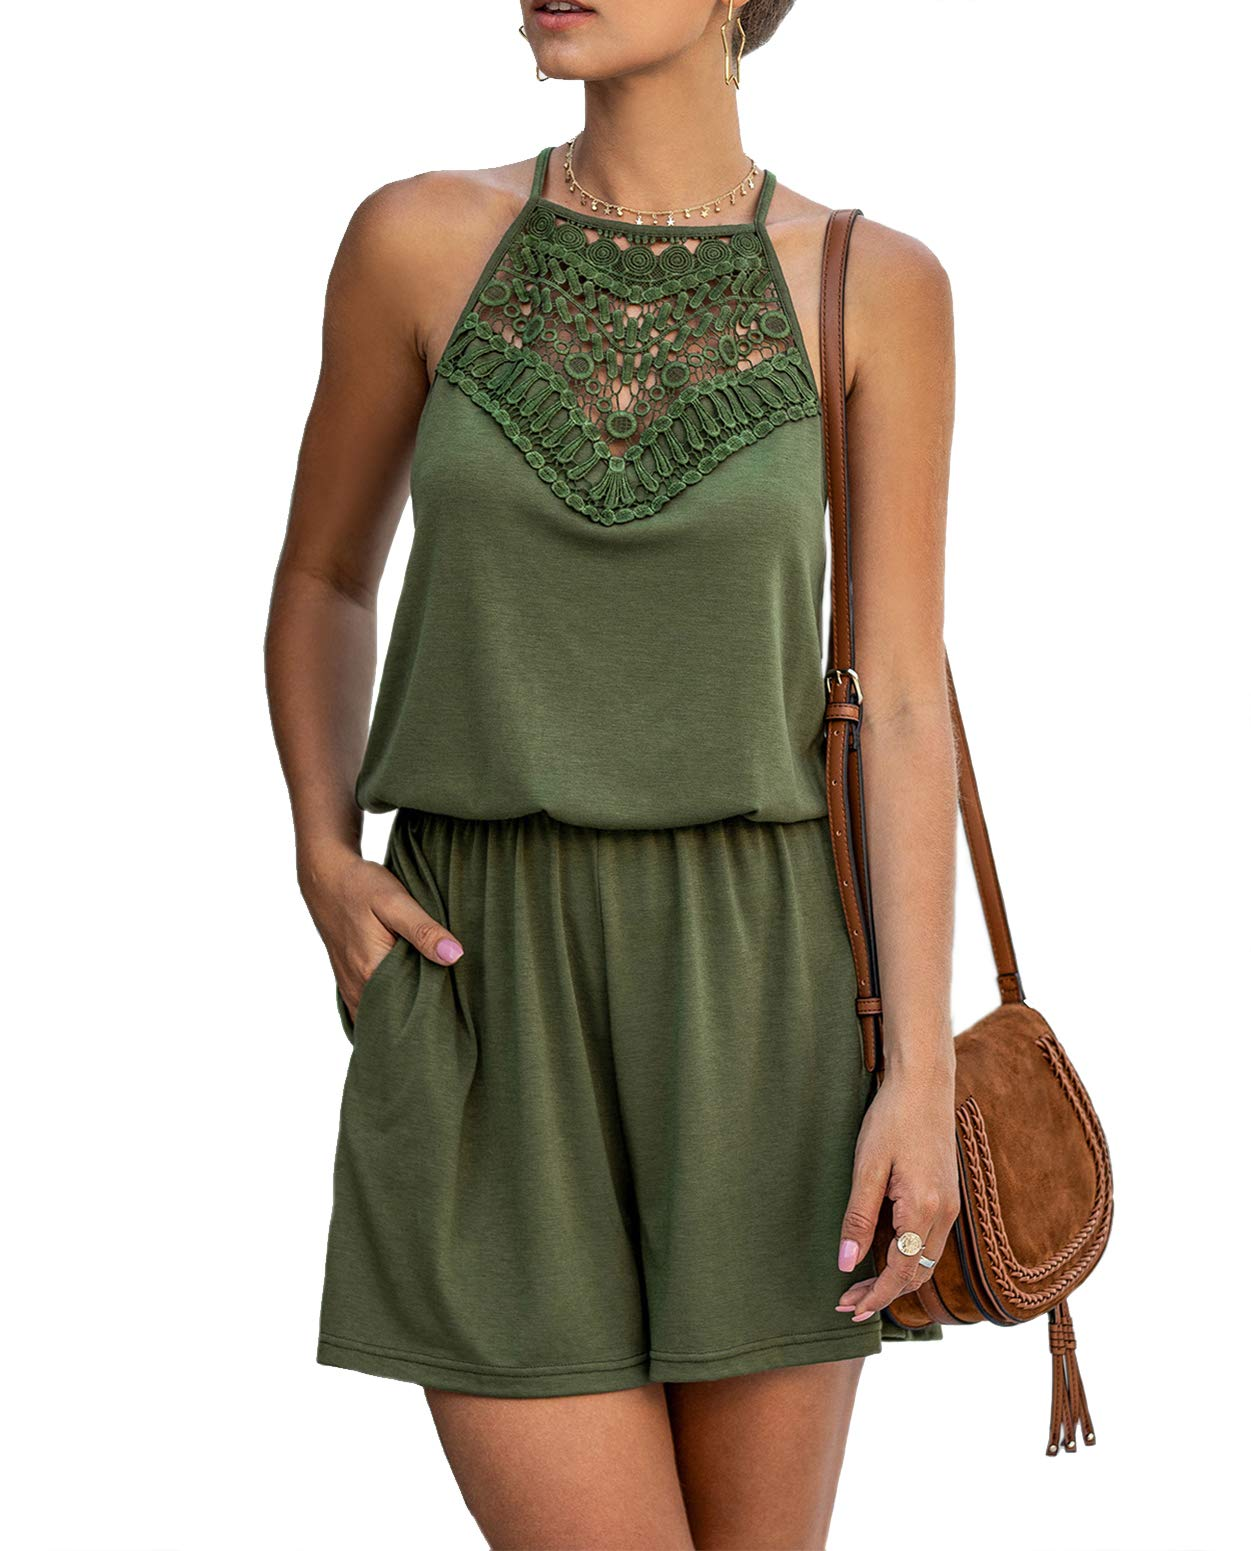 MANSY Womens Rompers Summer Lace Halter Neck Patchwork Sleeveless Short Pant Jumpsuit Rompers with Pocket